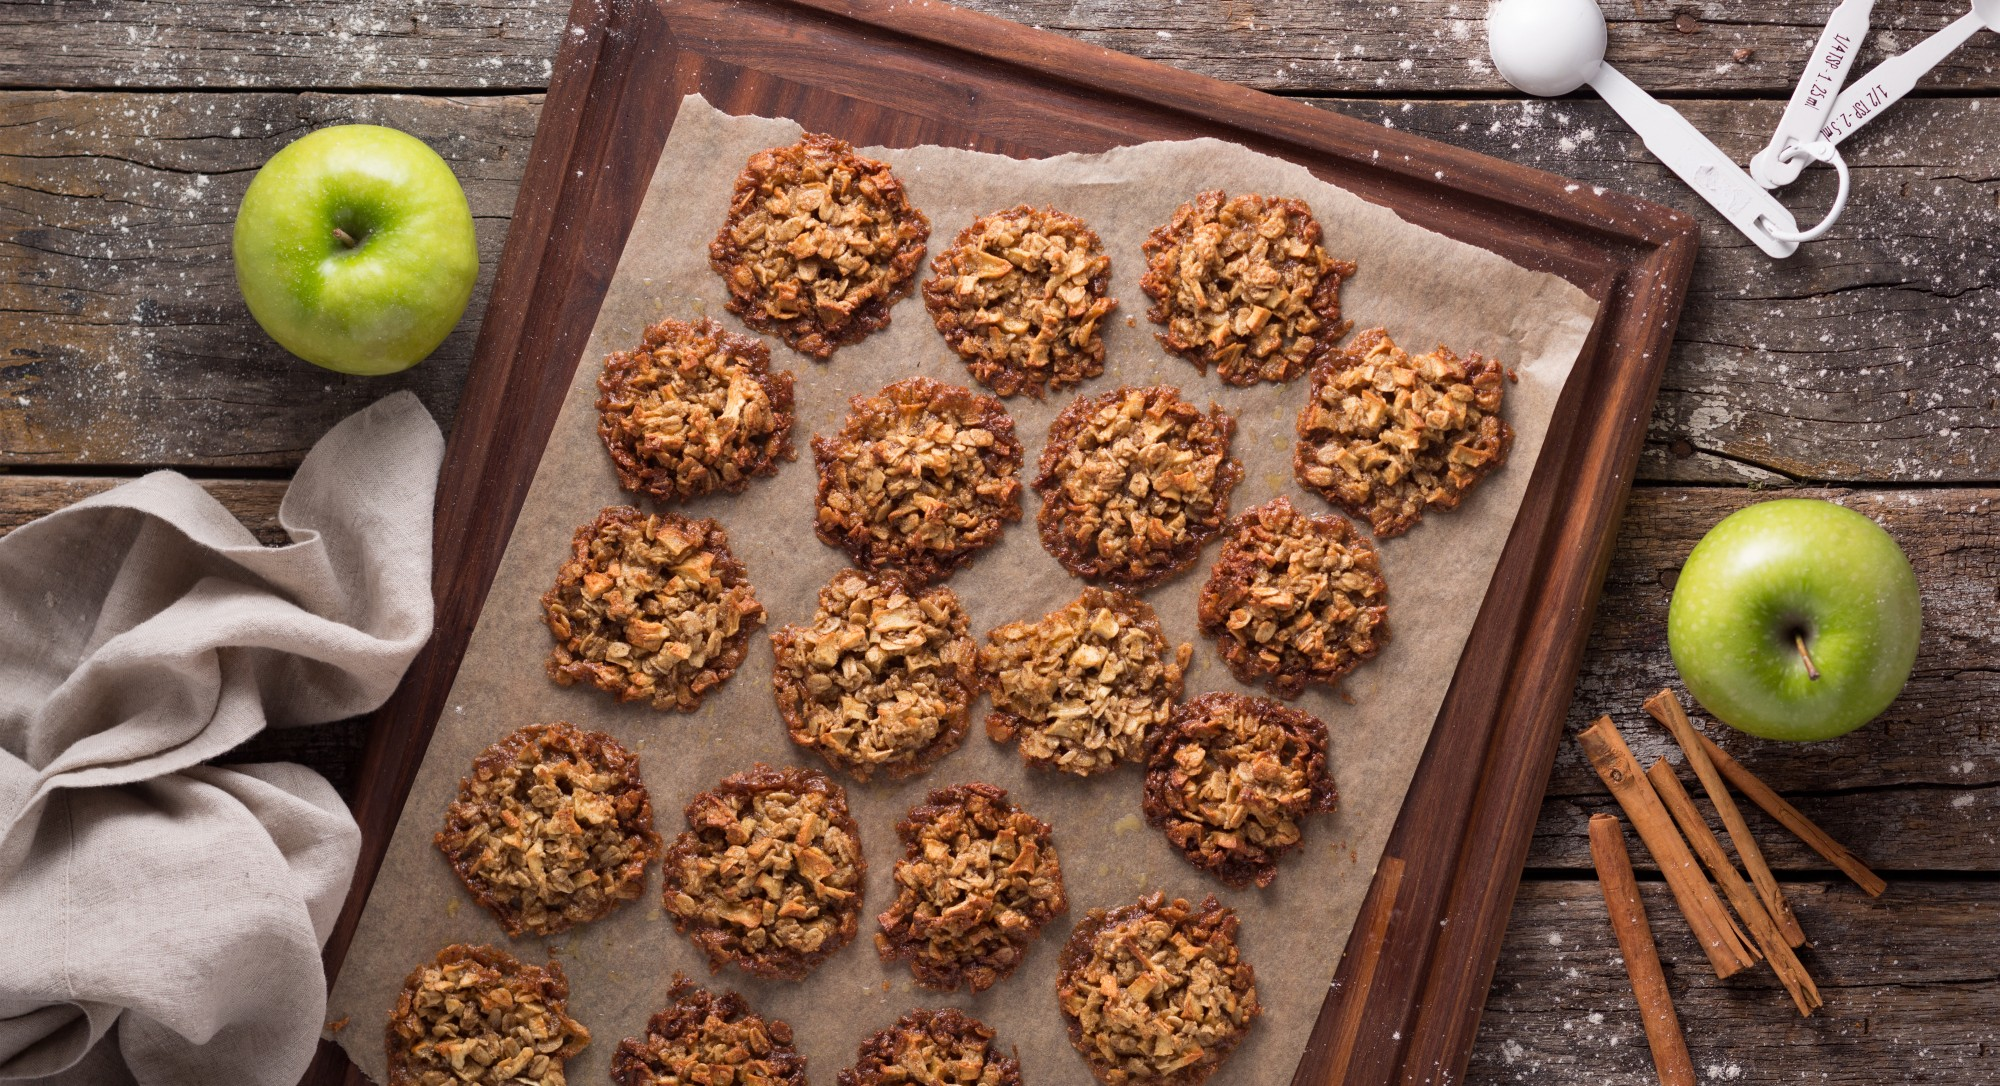 Celebrate The Beginning of Fall With These Spiced Apple Oat Cookies